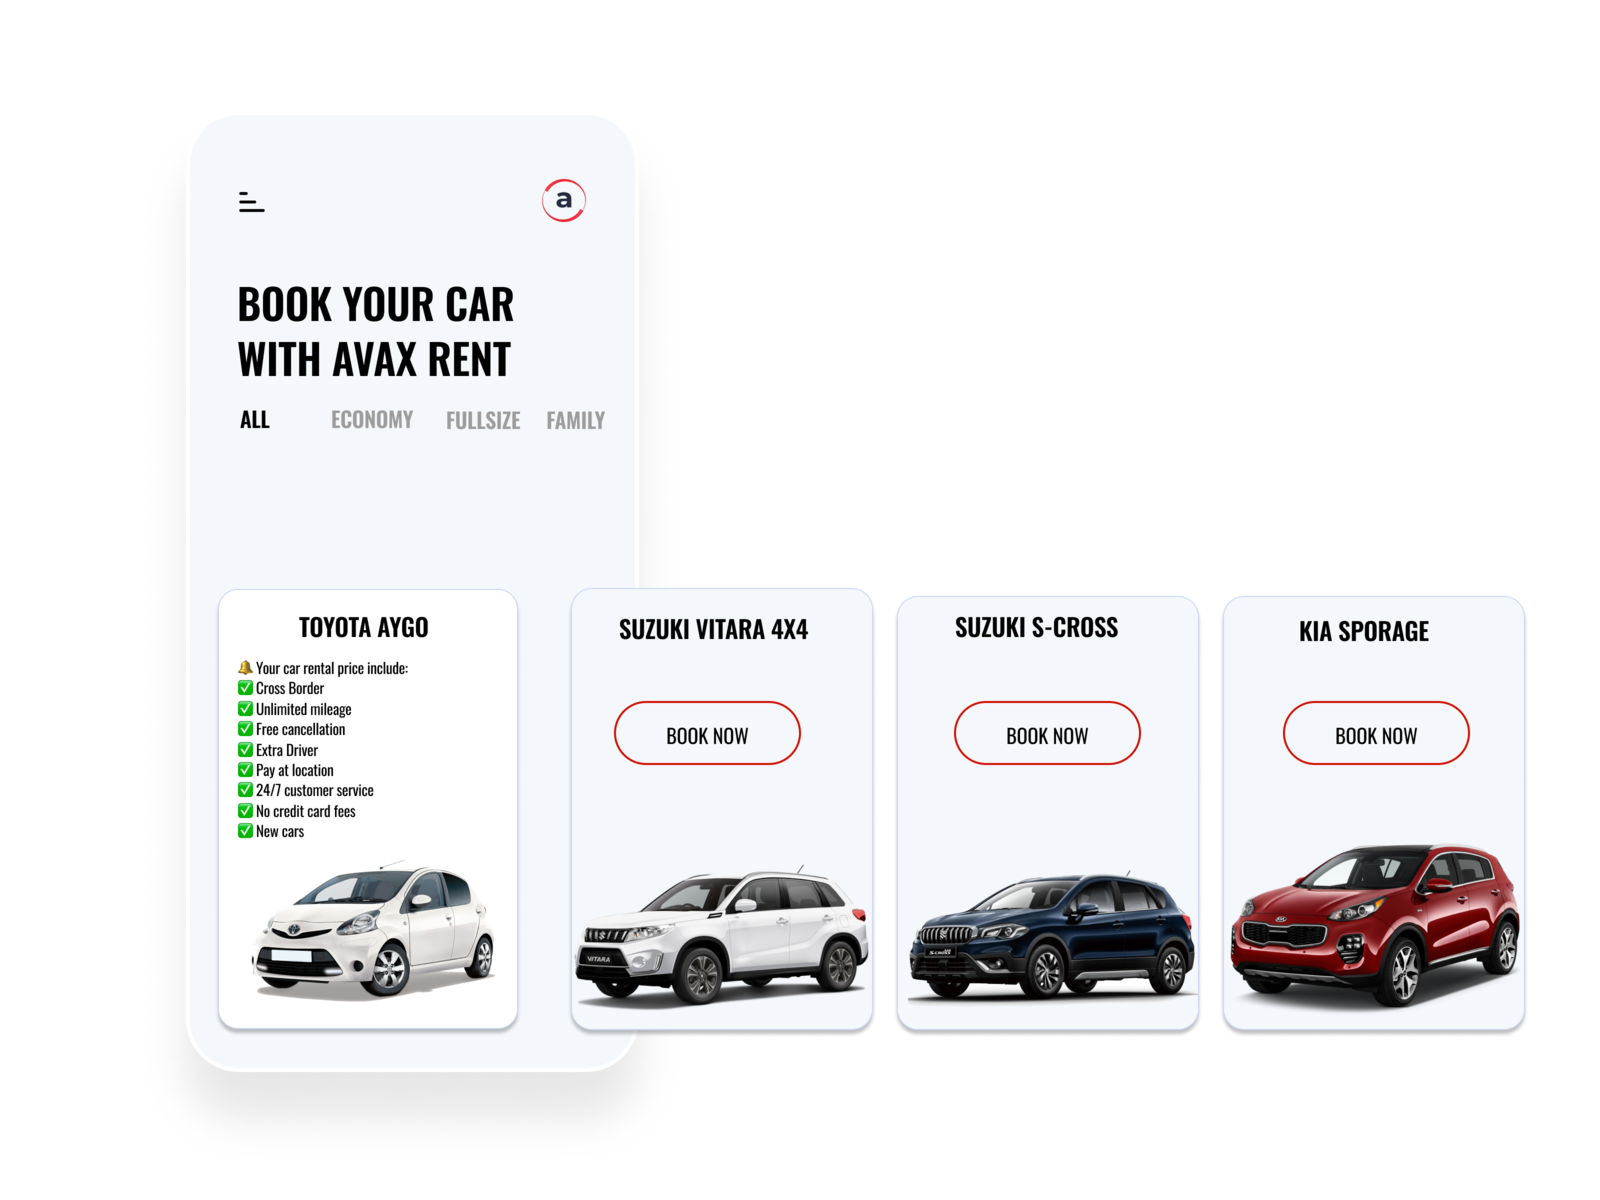 Book your car with Avax rent a car